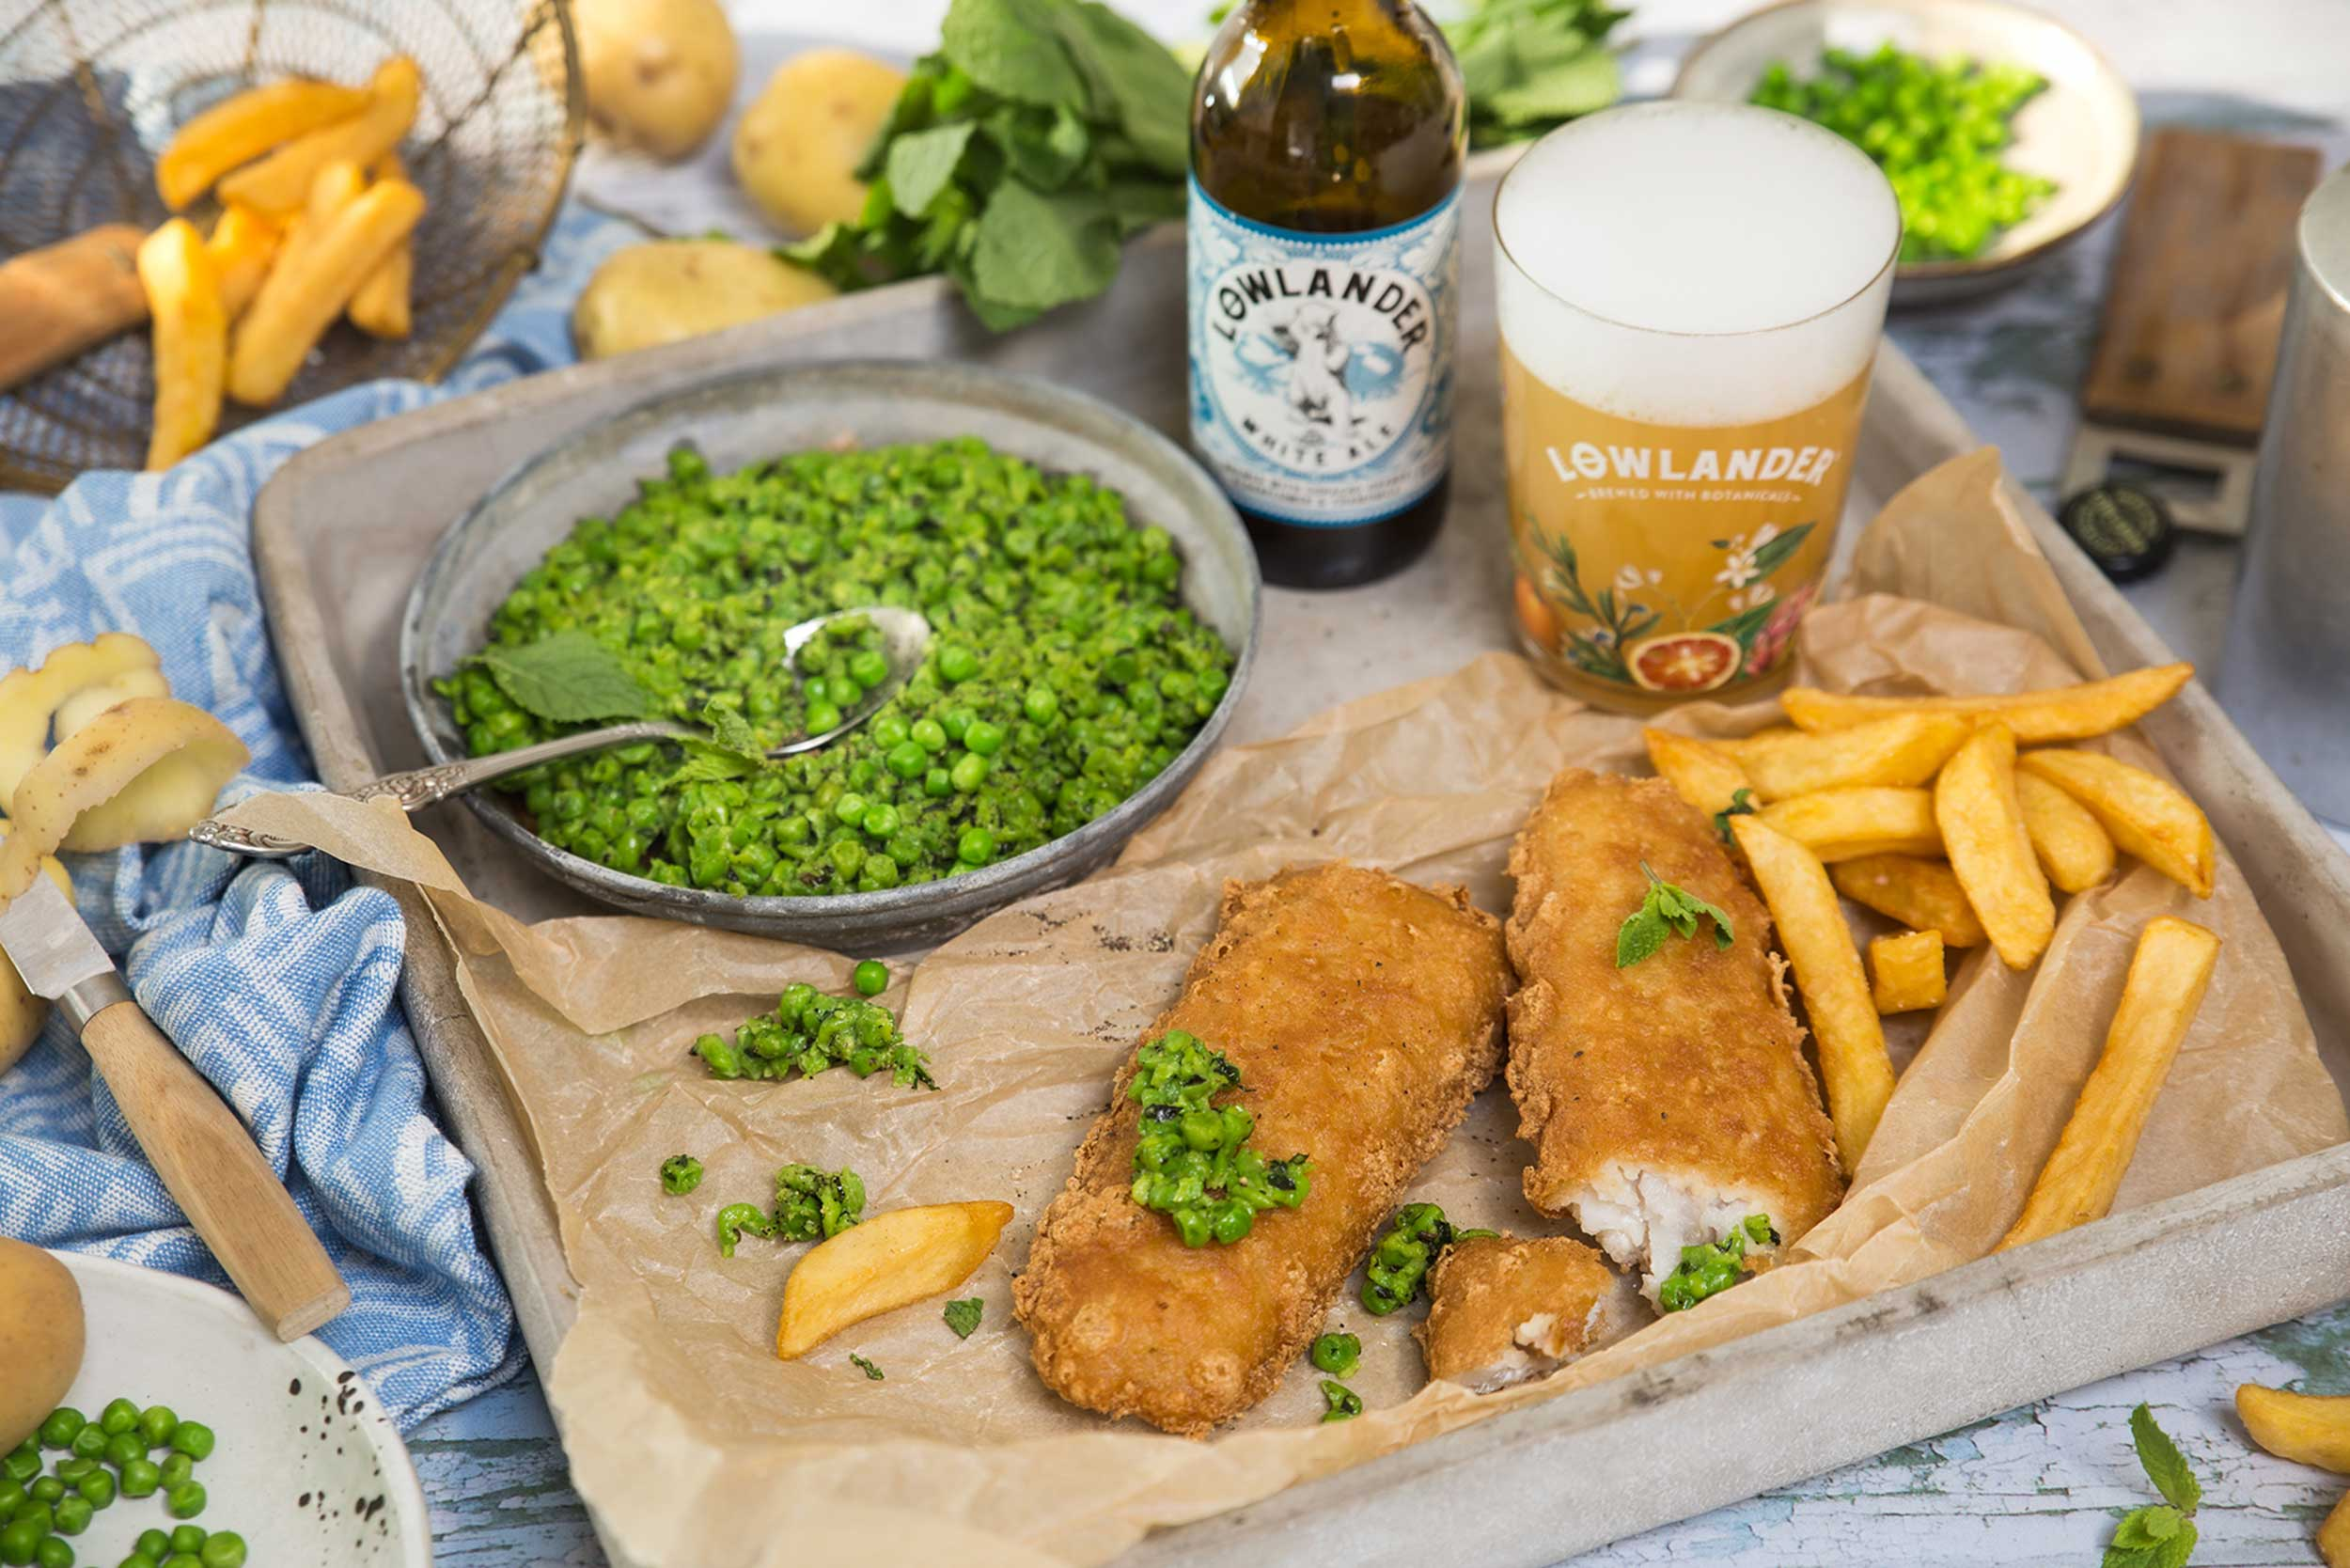 Lowlander Botanical Beers_Recipe_Foodpairing_White Ale_ Mushed Peas and Fish_landscape